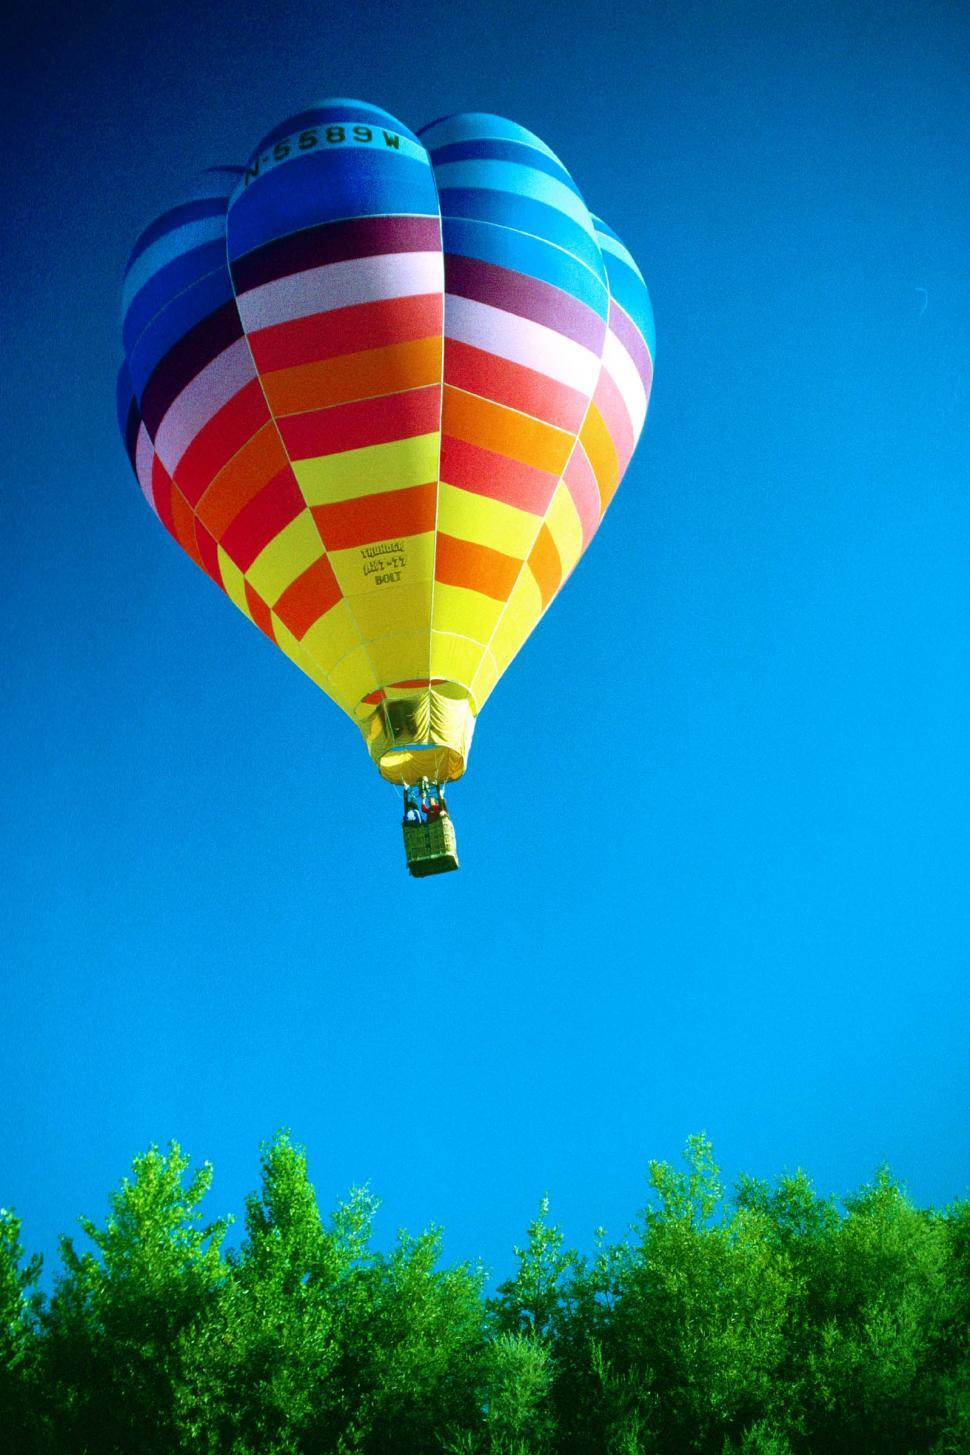 Download Free Stock HD Photo of Colorful hot air balloon  Online